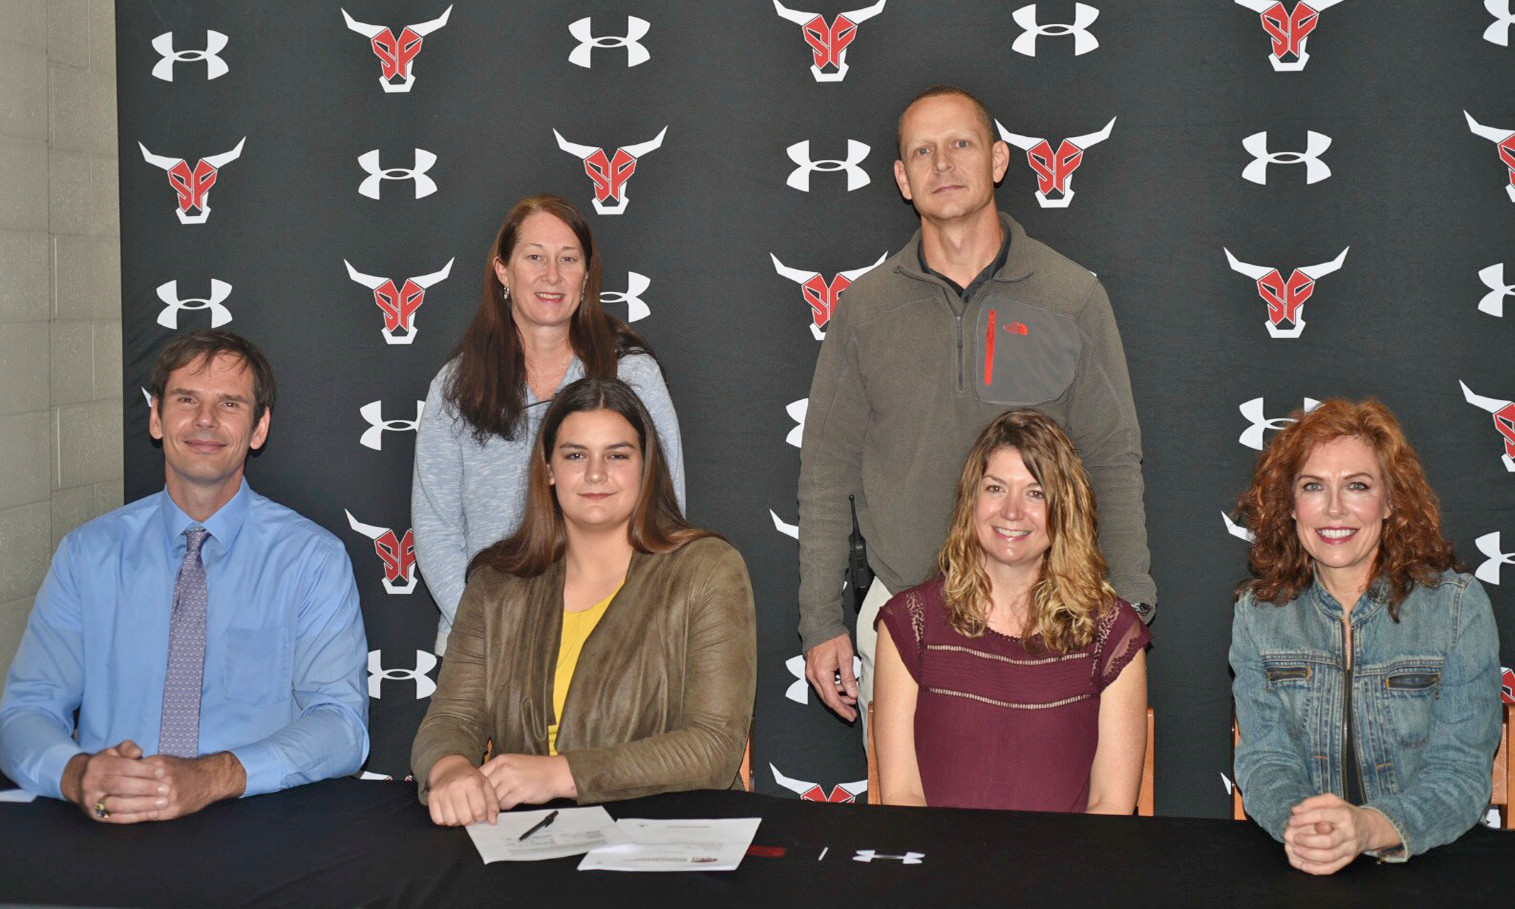 Seated from left are former (Three time) Olympian Gabor Mate, signee Alivia Busch, her mom Erica Busch and former Toros track and field coach Pam Swan. Standing from left is SFHS Girls AD Gretchen Boykin and Asst. SF Principle George Brown.